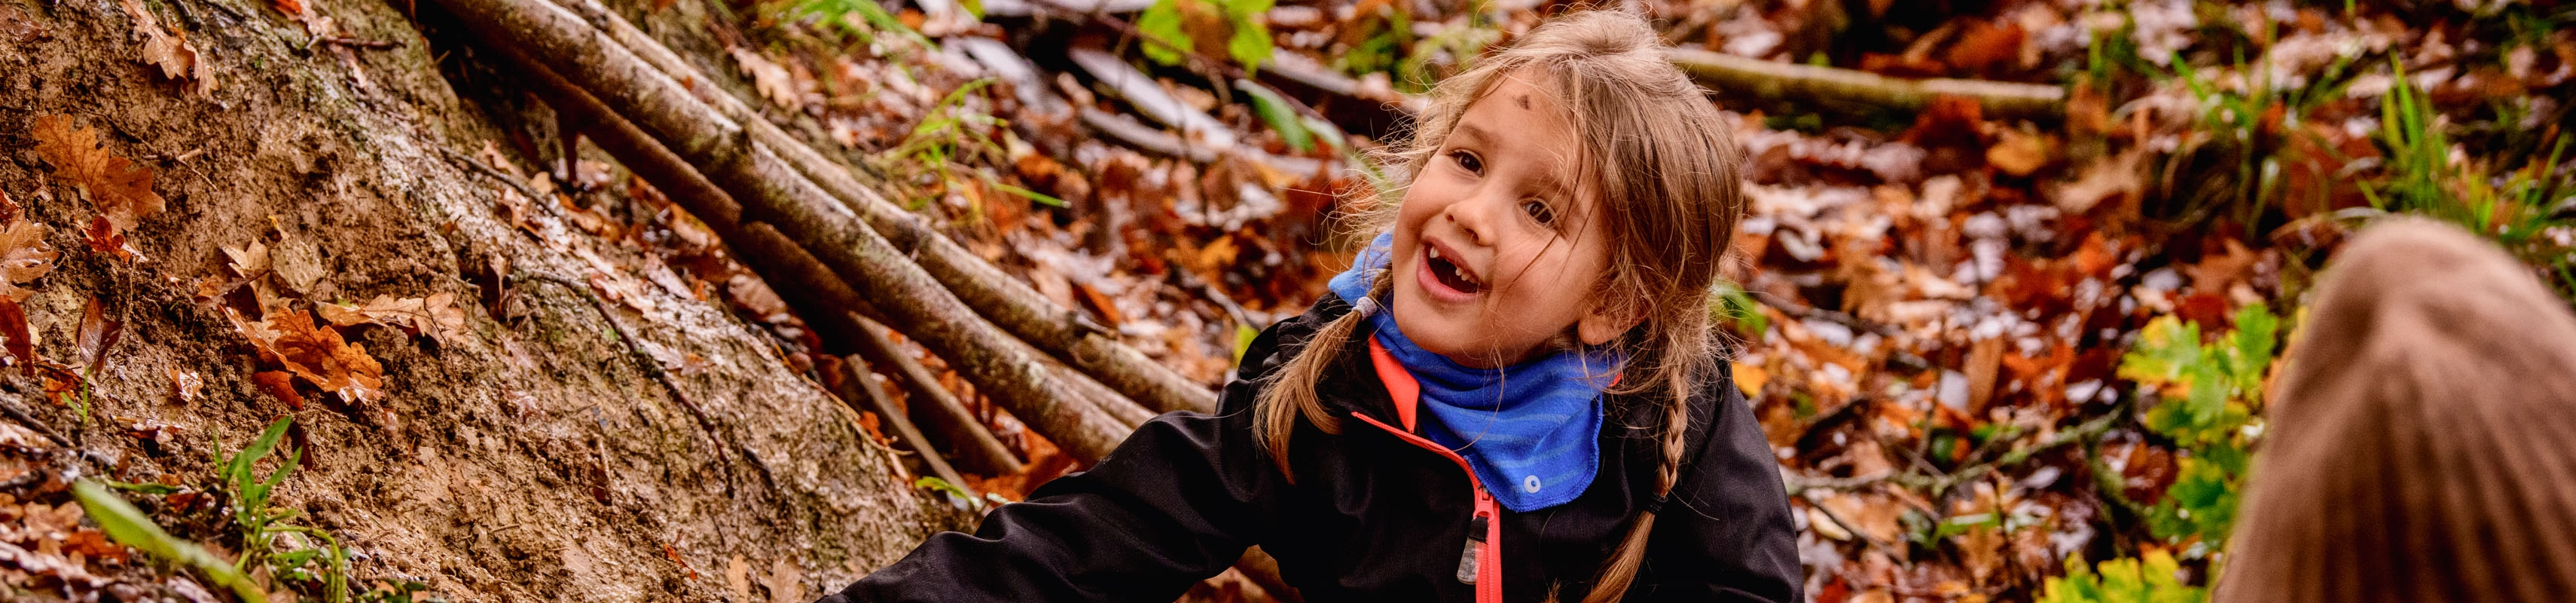 A young girl smiles and plays on the forest floor of Wakehurst